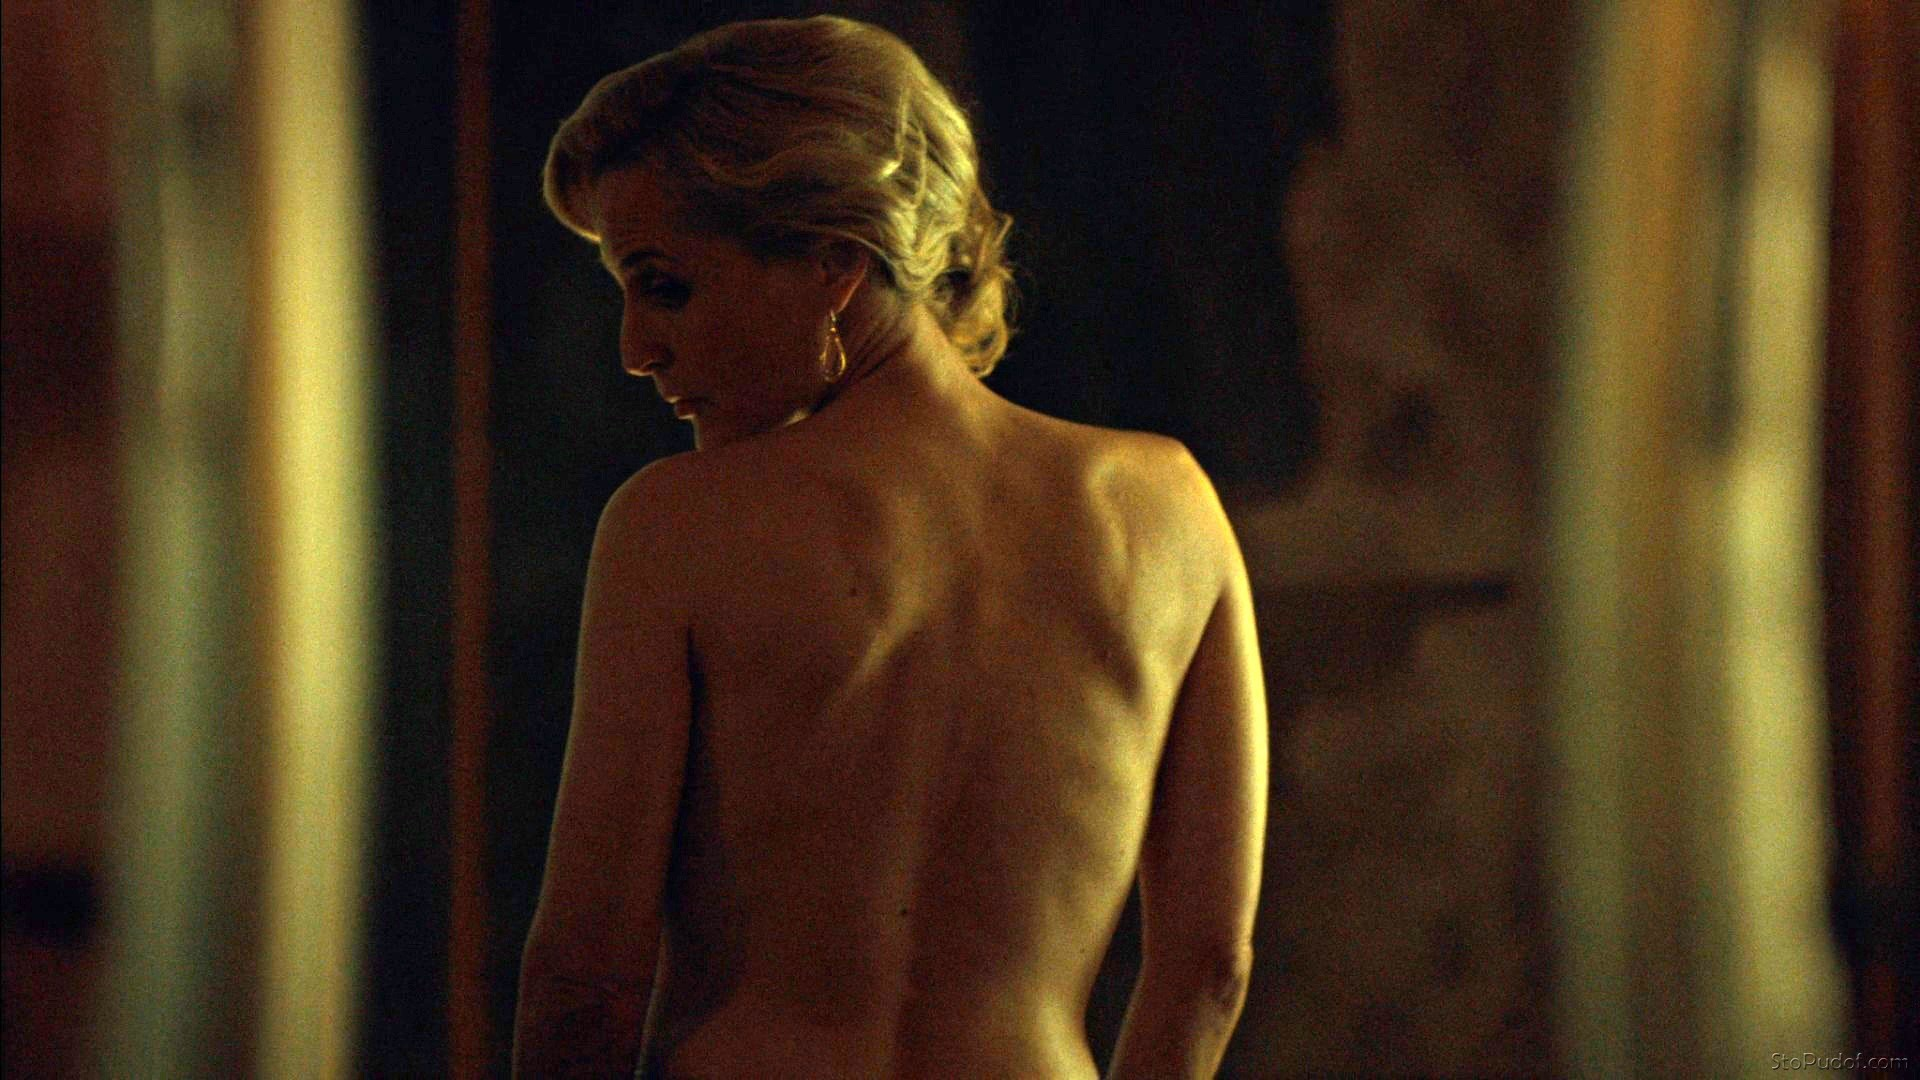 naked photos of Gillian Anderson and jennifer lawrence - UkPhotoSafari